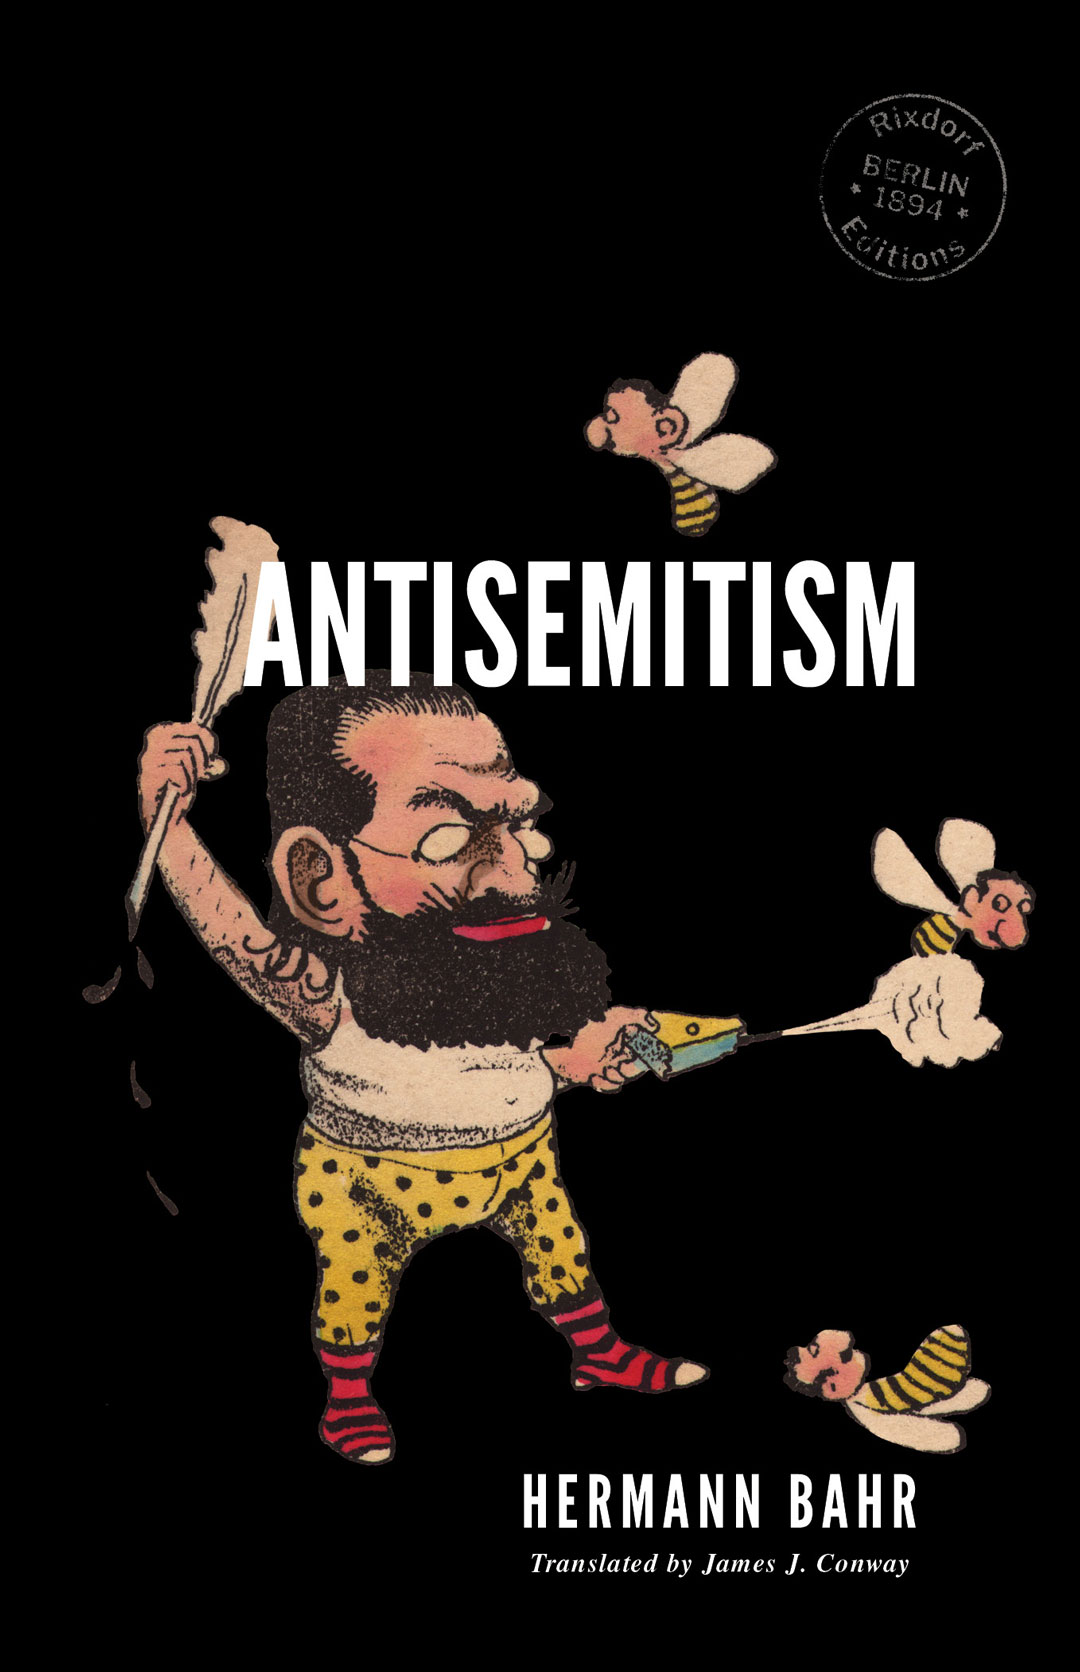 Hermann Bahr   Antisemitism  Translated by James J. Conway Design by  Svenja Prigge  21 October 2019 244 pages, trade paperback 115 x 178 mm, French flaps ISBN: 978-3-947325-10-8  EUR 12